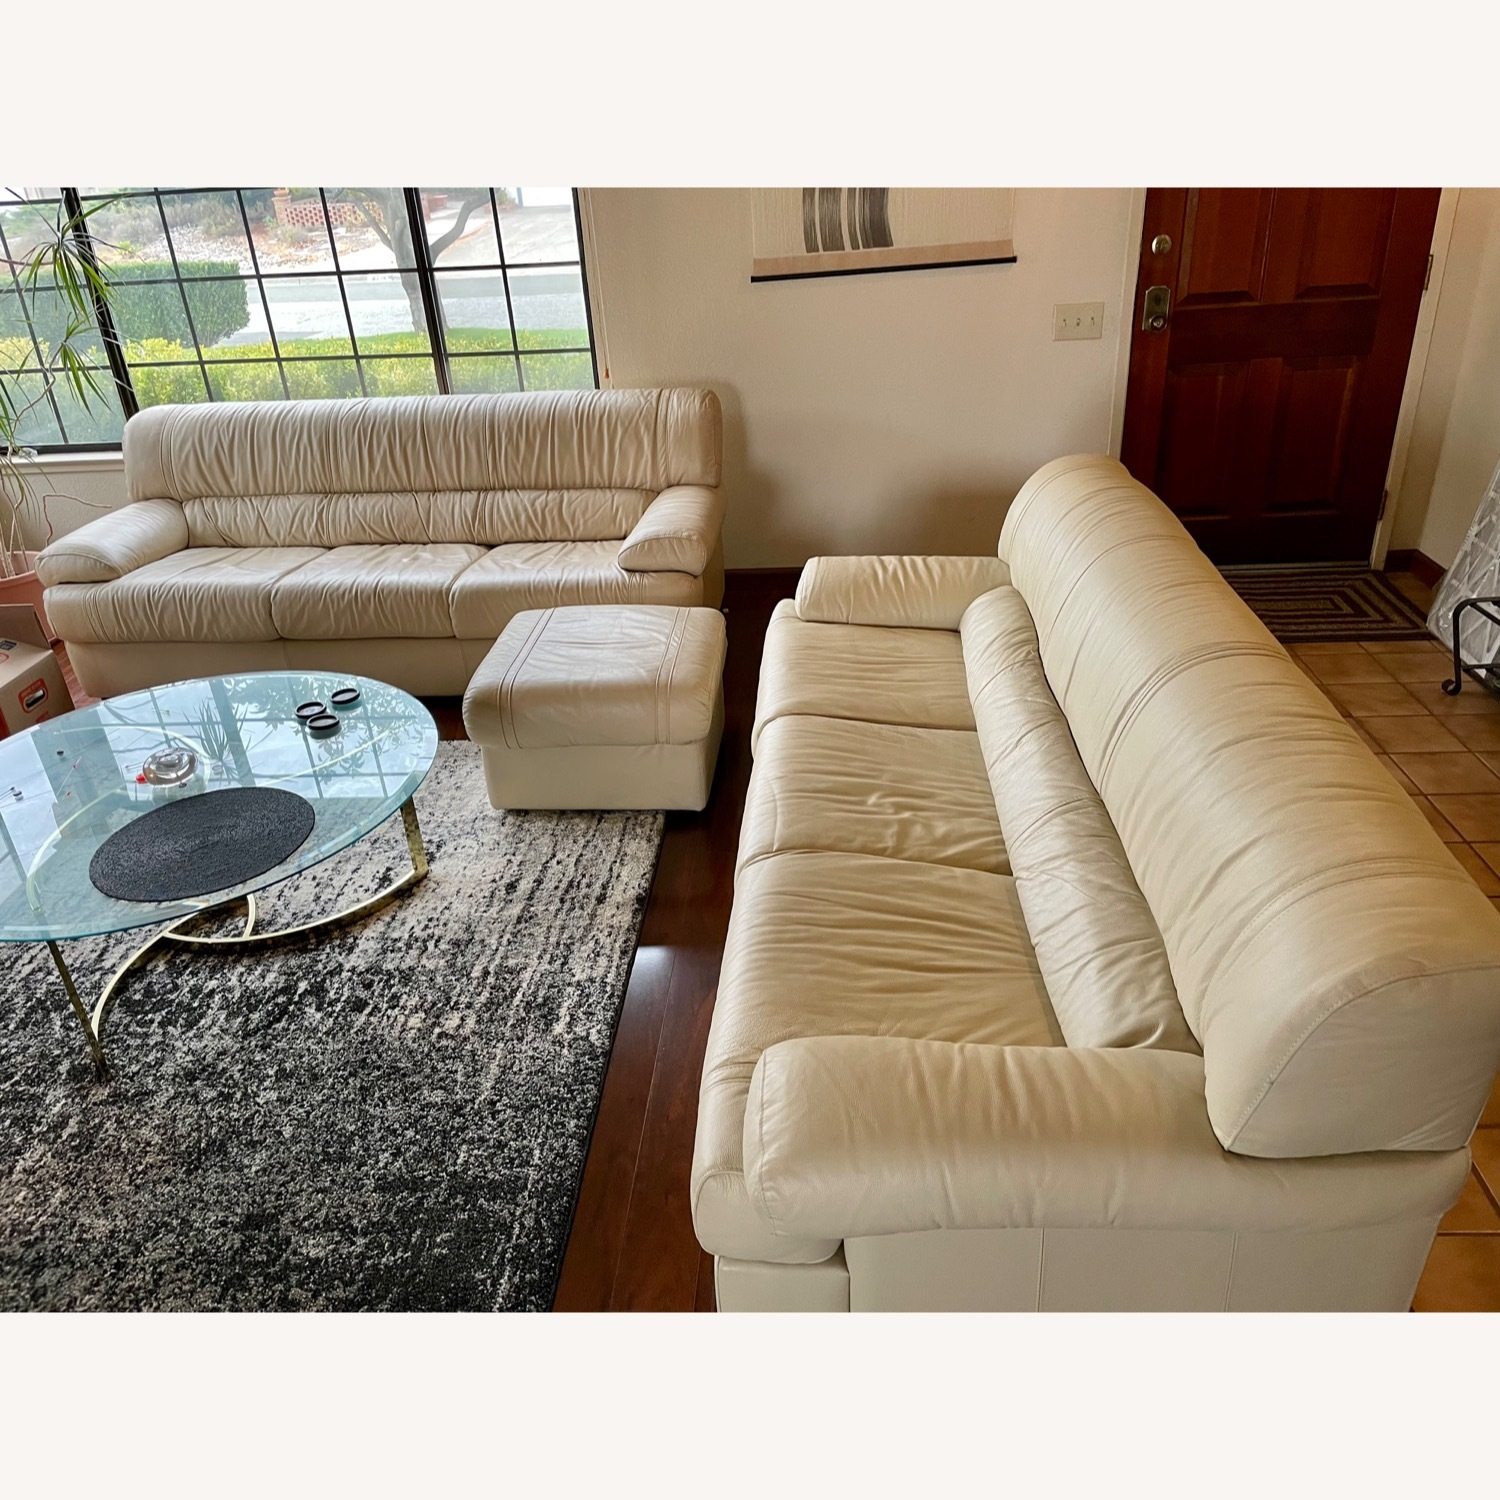 Leather Sofa Set Made in Italy - image-1